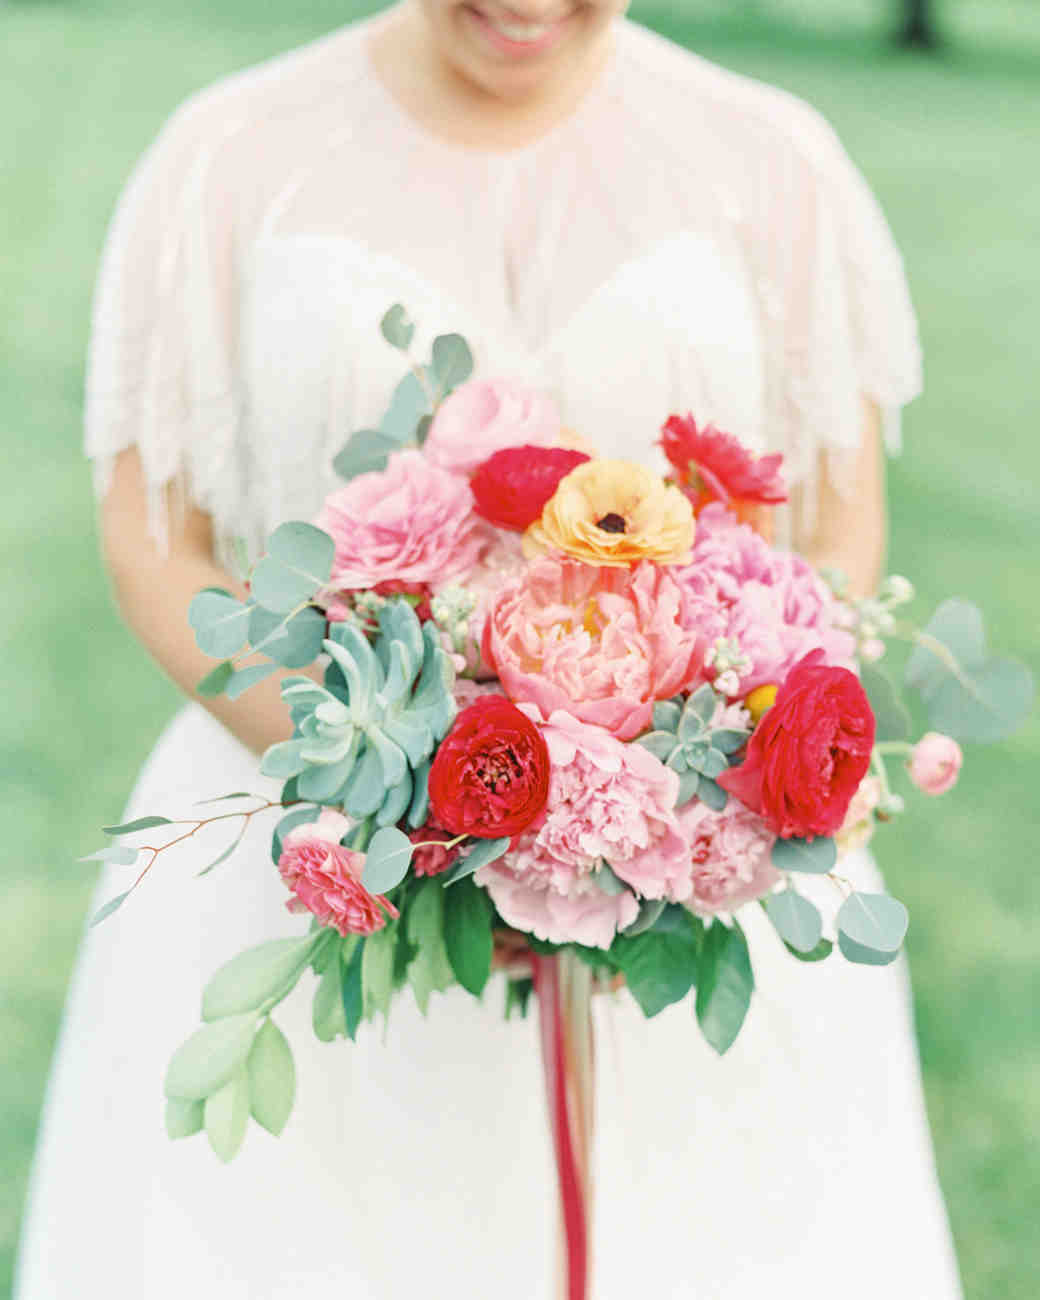 Bride Holding Bright Pink and Red Bouquet